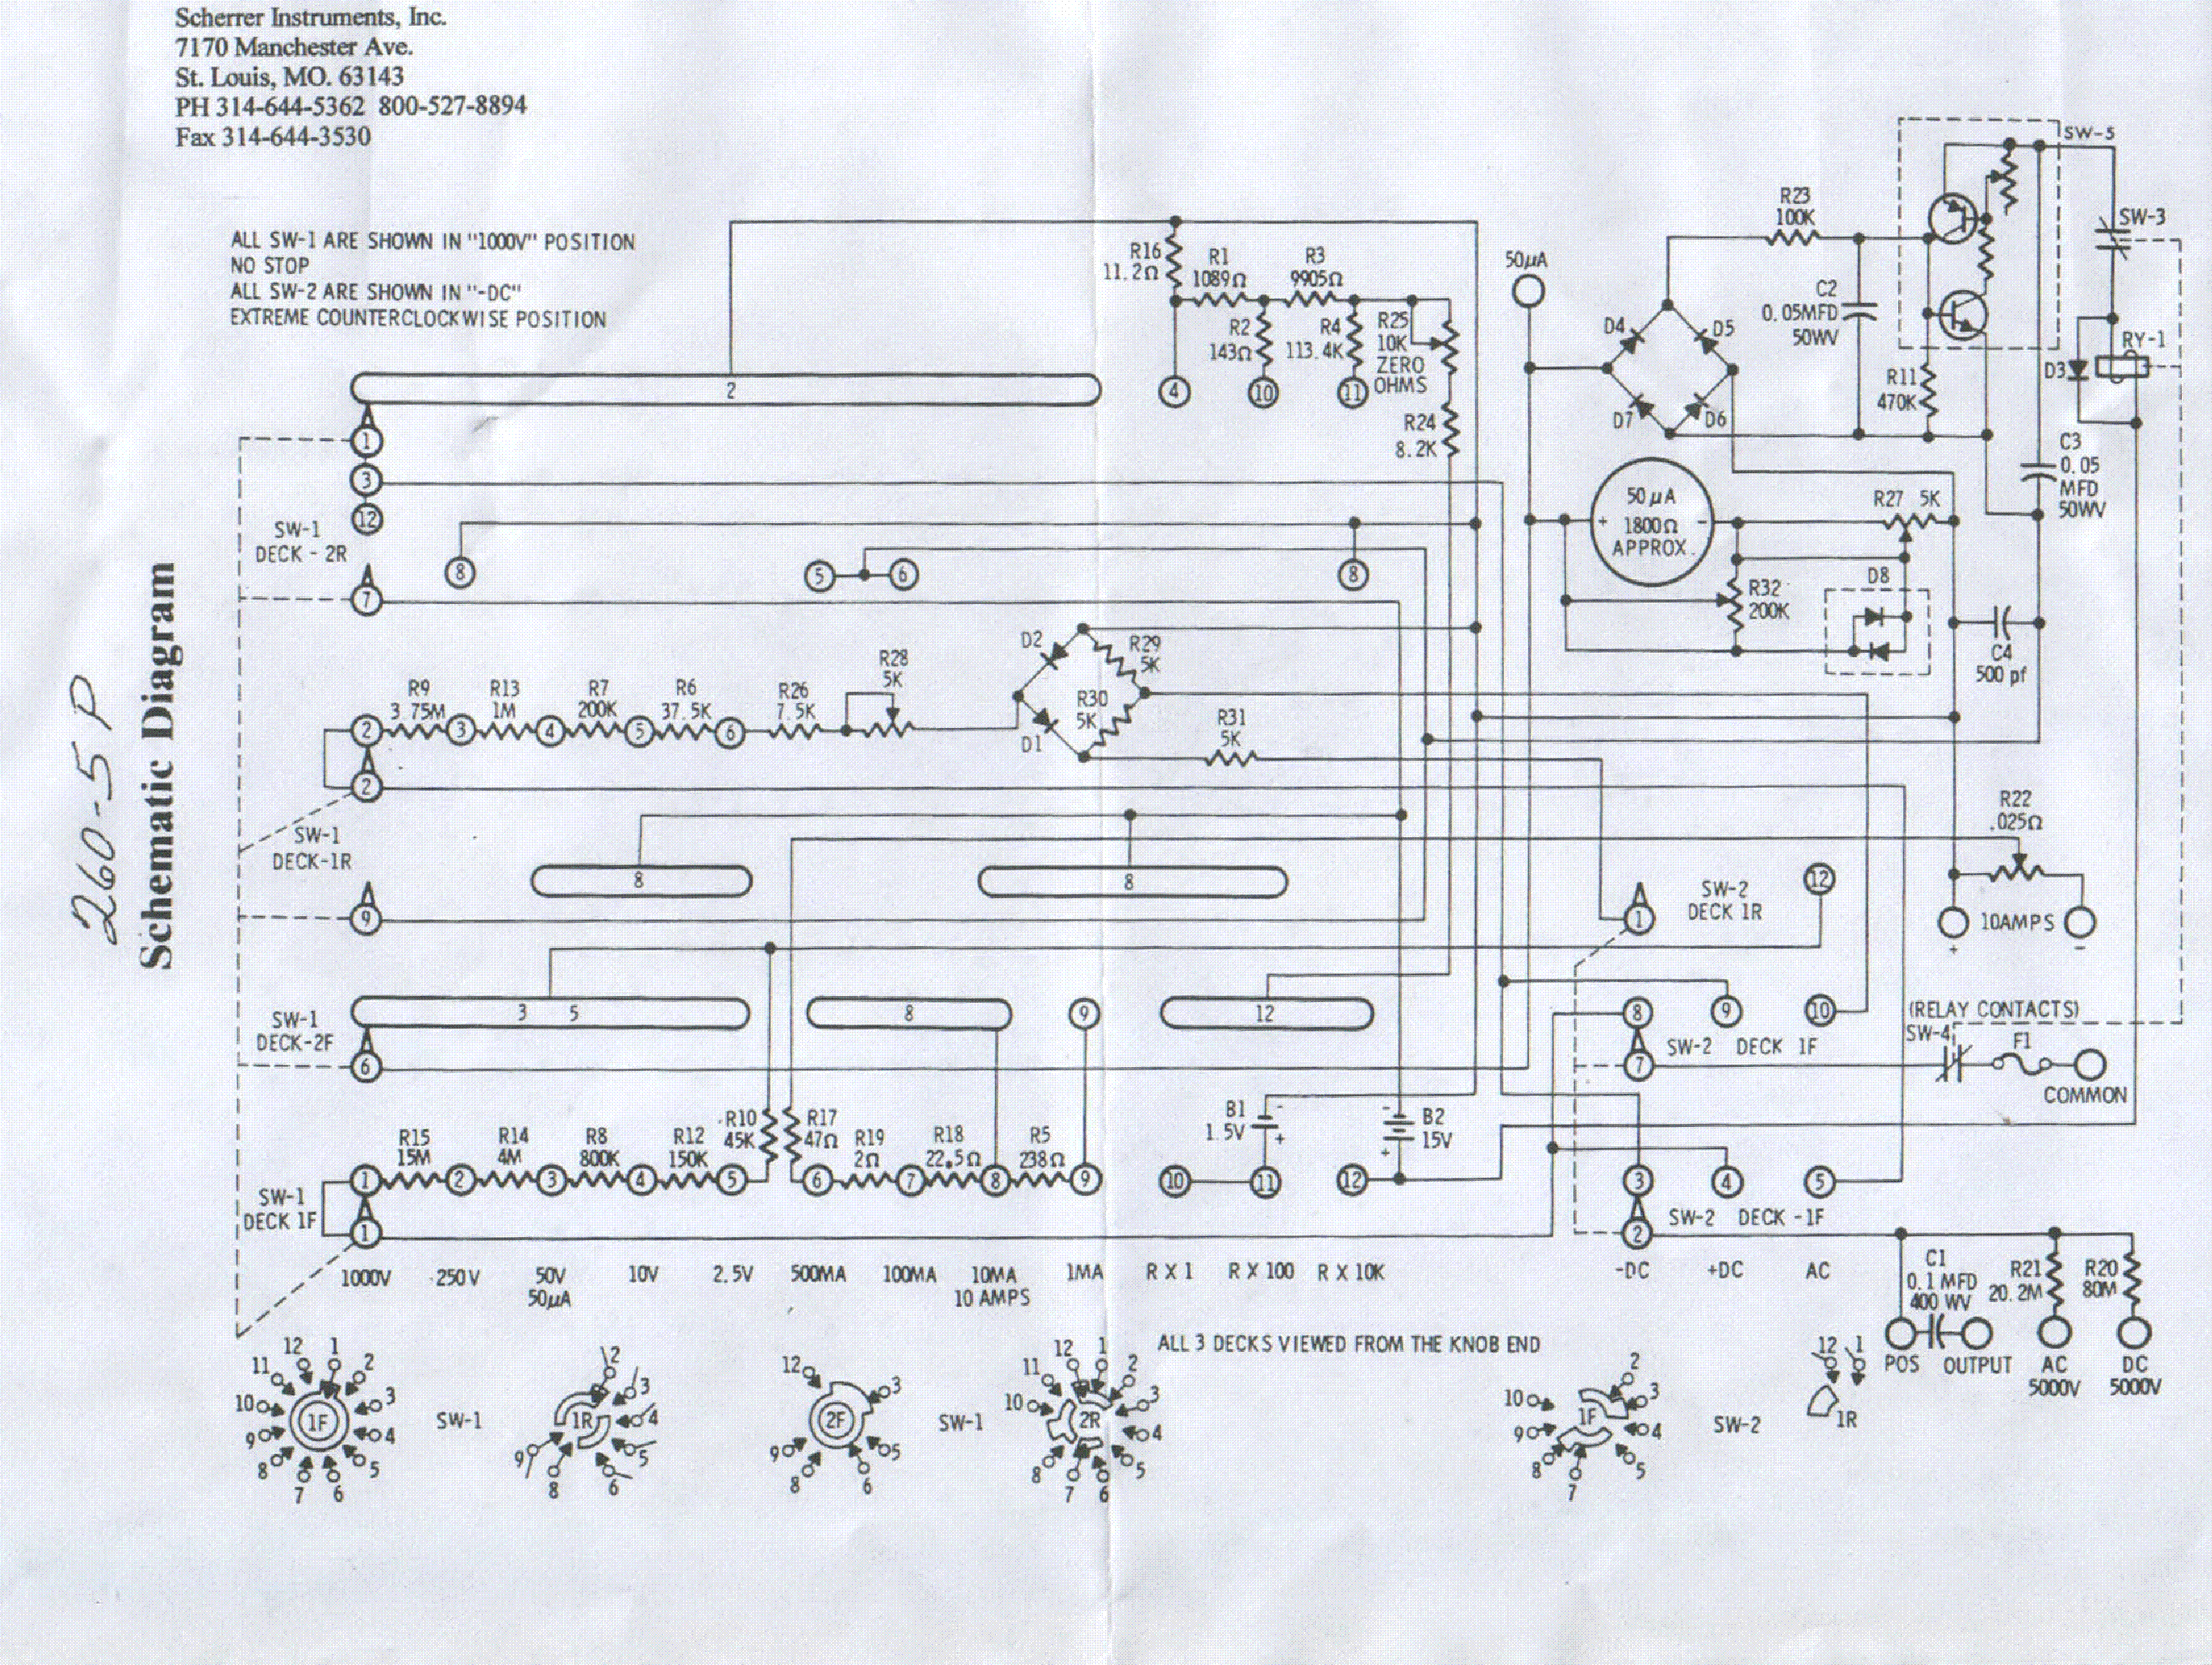 wiring diagrams for electrical with Simpson 260 Multimeter Schematic on Modine Unit Heater Wiring Diagram Voltage Line also P 0996b43f8025f0d0 as well 165278 Abs Wiring Help Electrical Experts moreover Diagram Electrical Wiring 1975 1975 furthermore Wdrs2000.